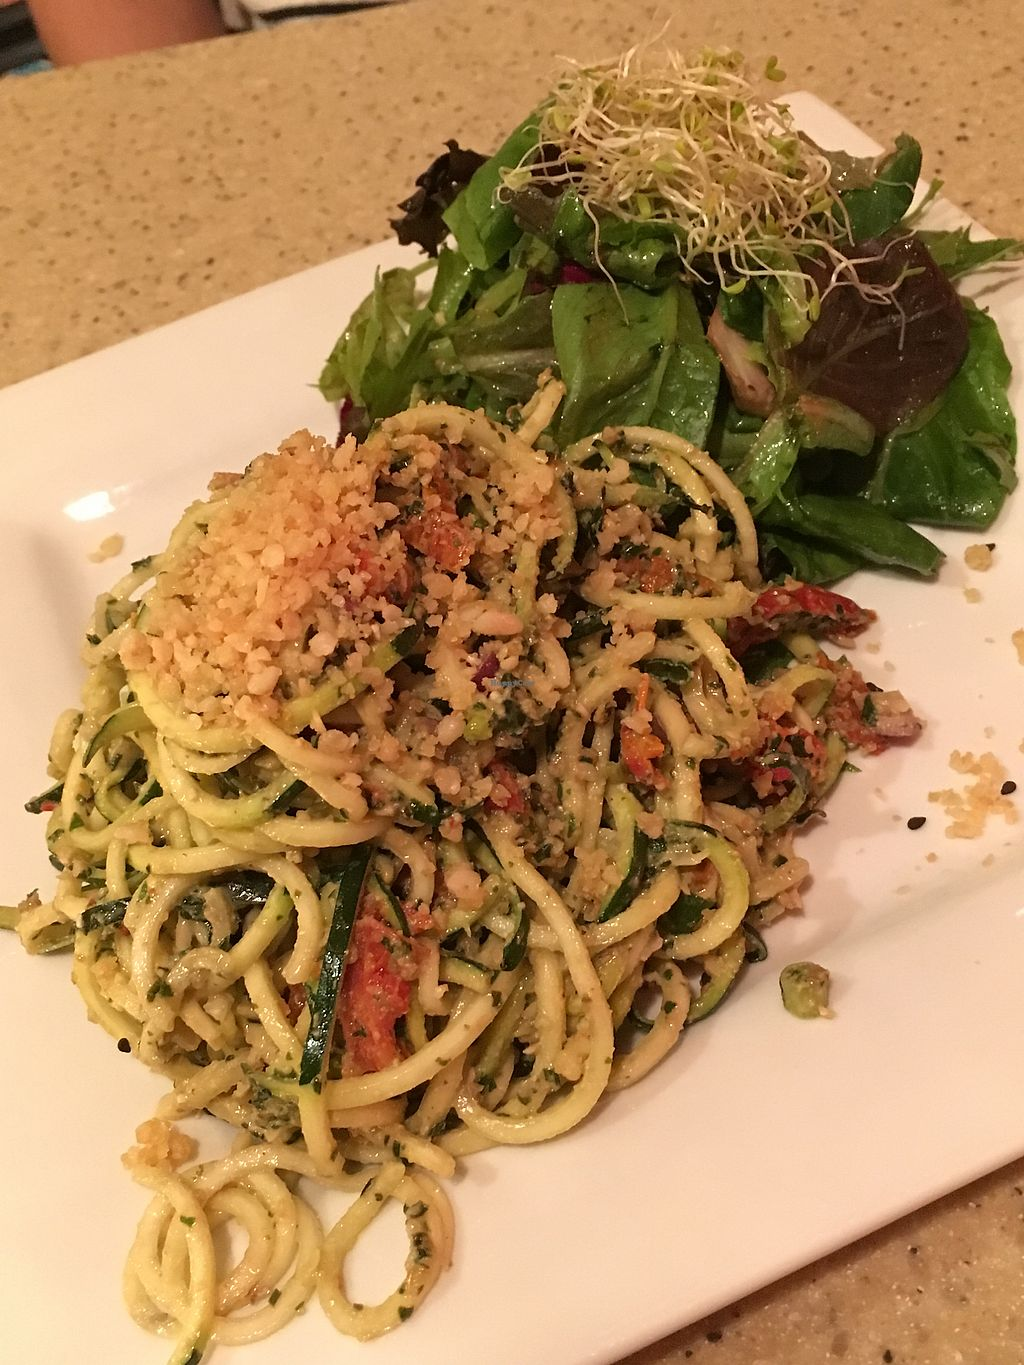 "Photo of The Present Moment Cafe and Market  by <a href=""/members/profile/KWdaddio"">KWdaddio</a> <br/>Zucchini white pesto.  <br/> November 13, 2017  - <a href='/contact/abuse/image/9044/324998'>Report</a>"